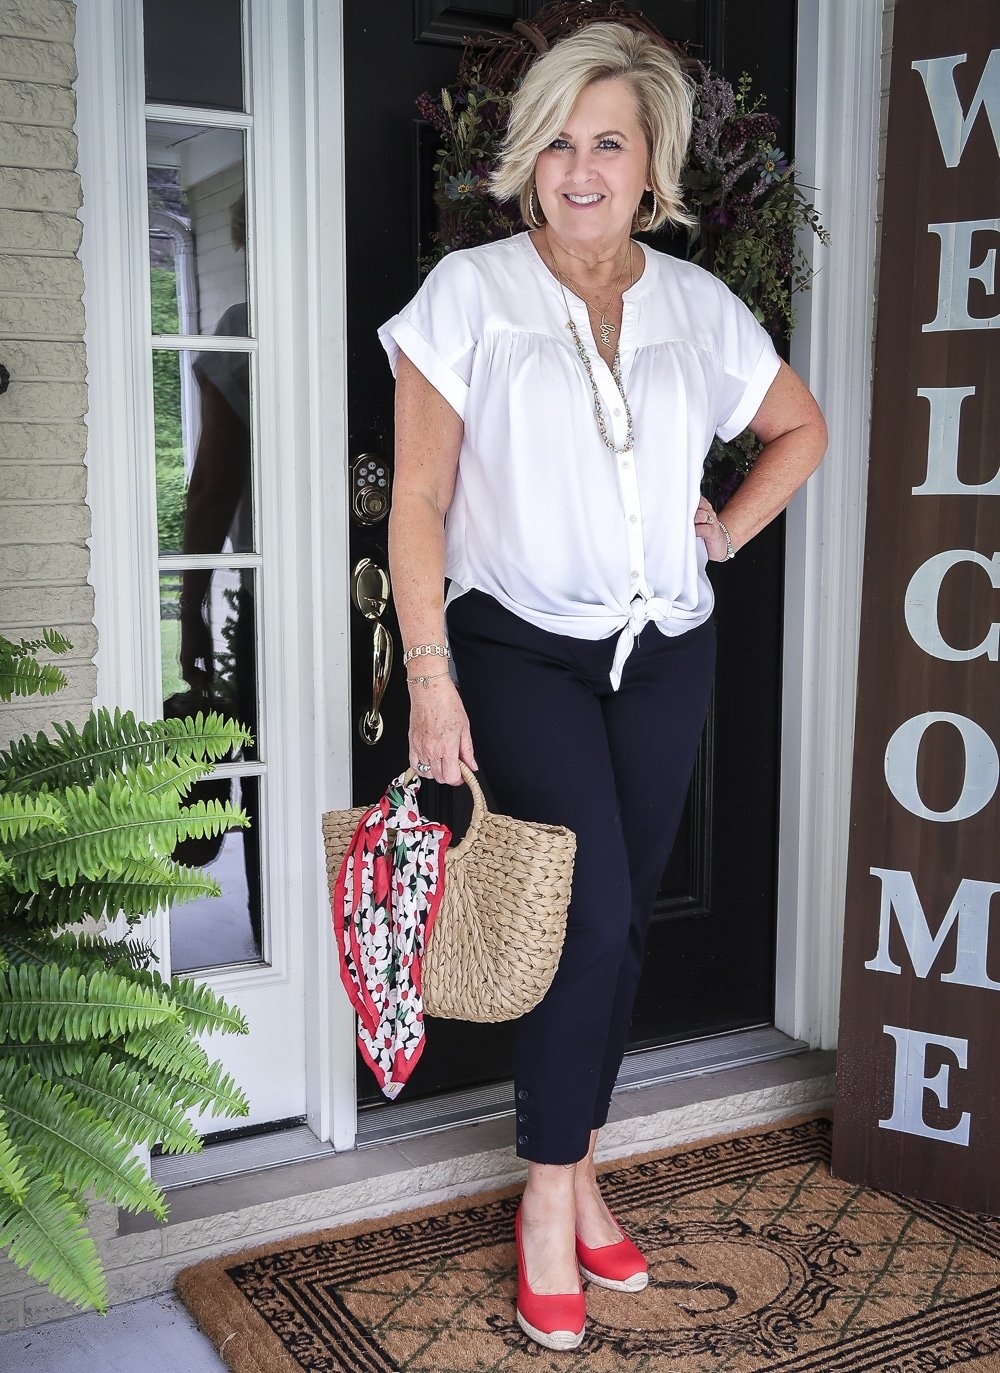 Fashion Blogger 50 Is Not Old is wearing a white tie-front top with blue crop pants, red espadrille shoes, and a straw tote with a scarf tied on the hand